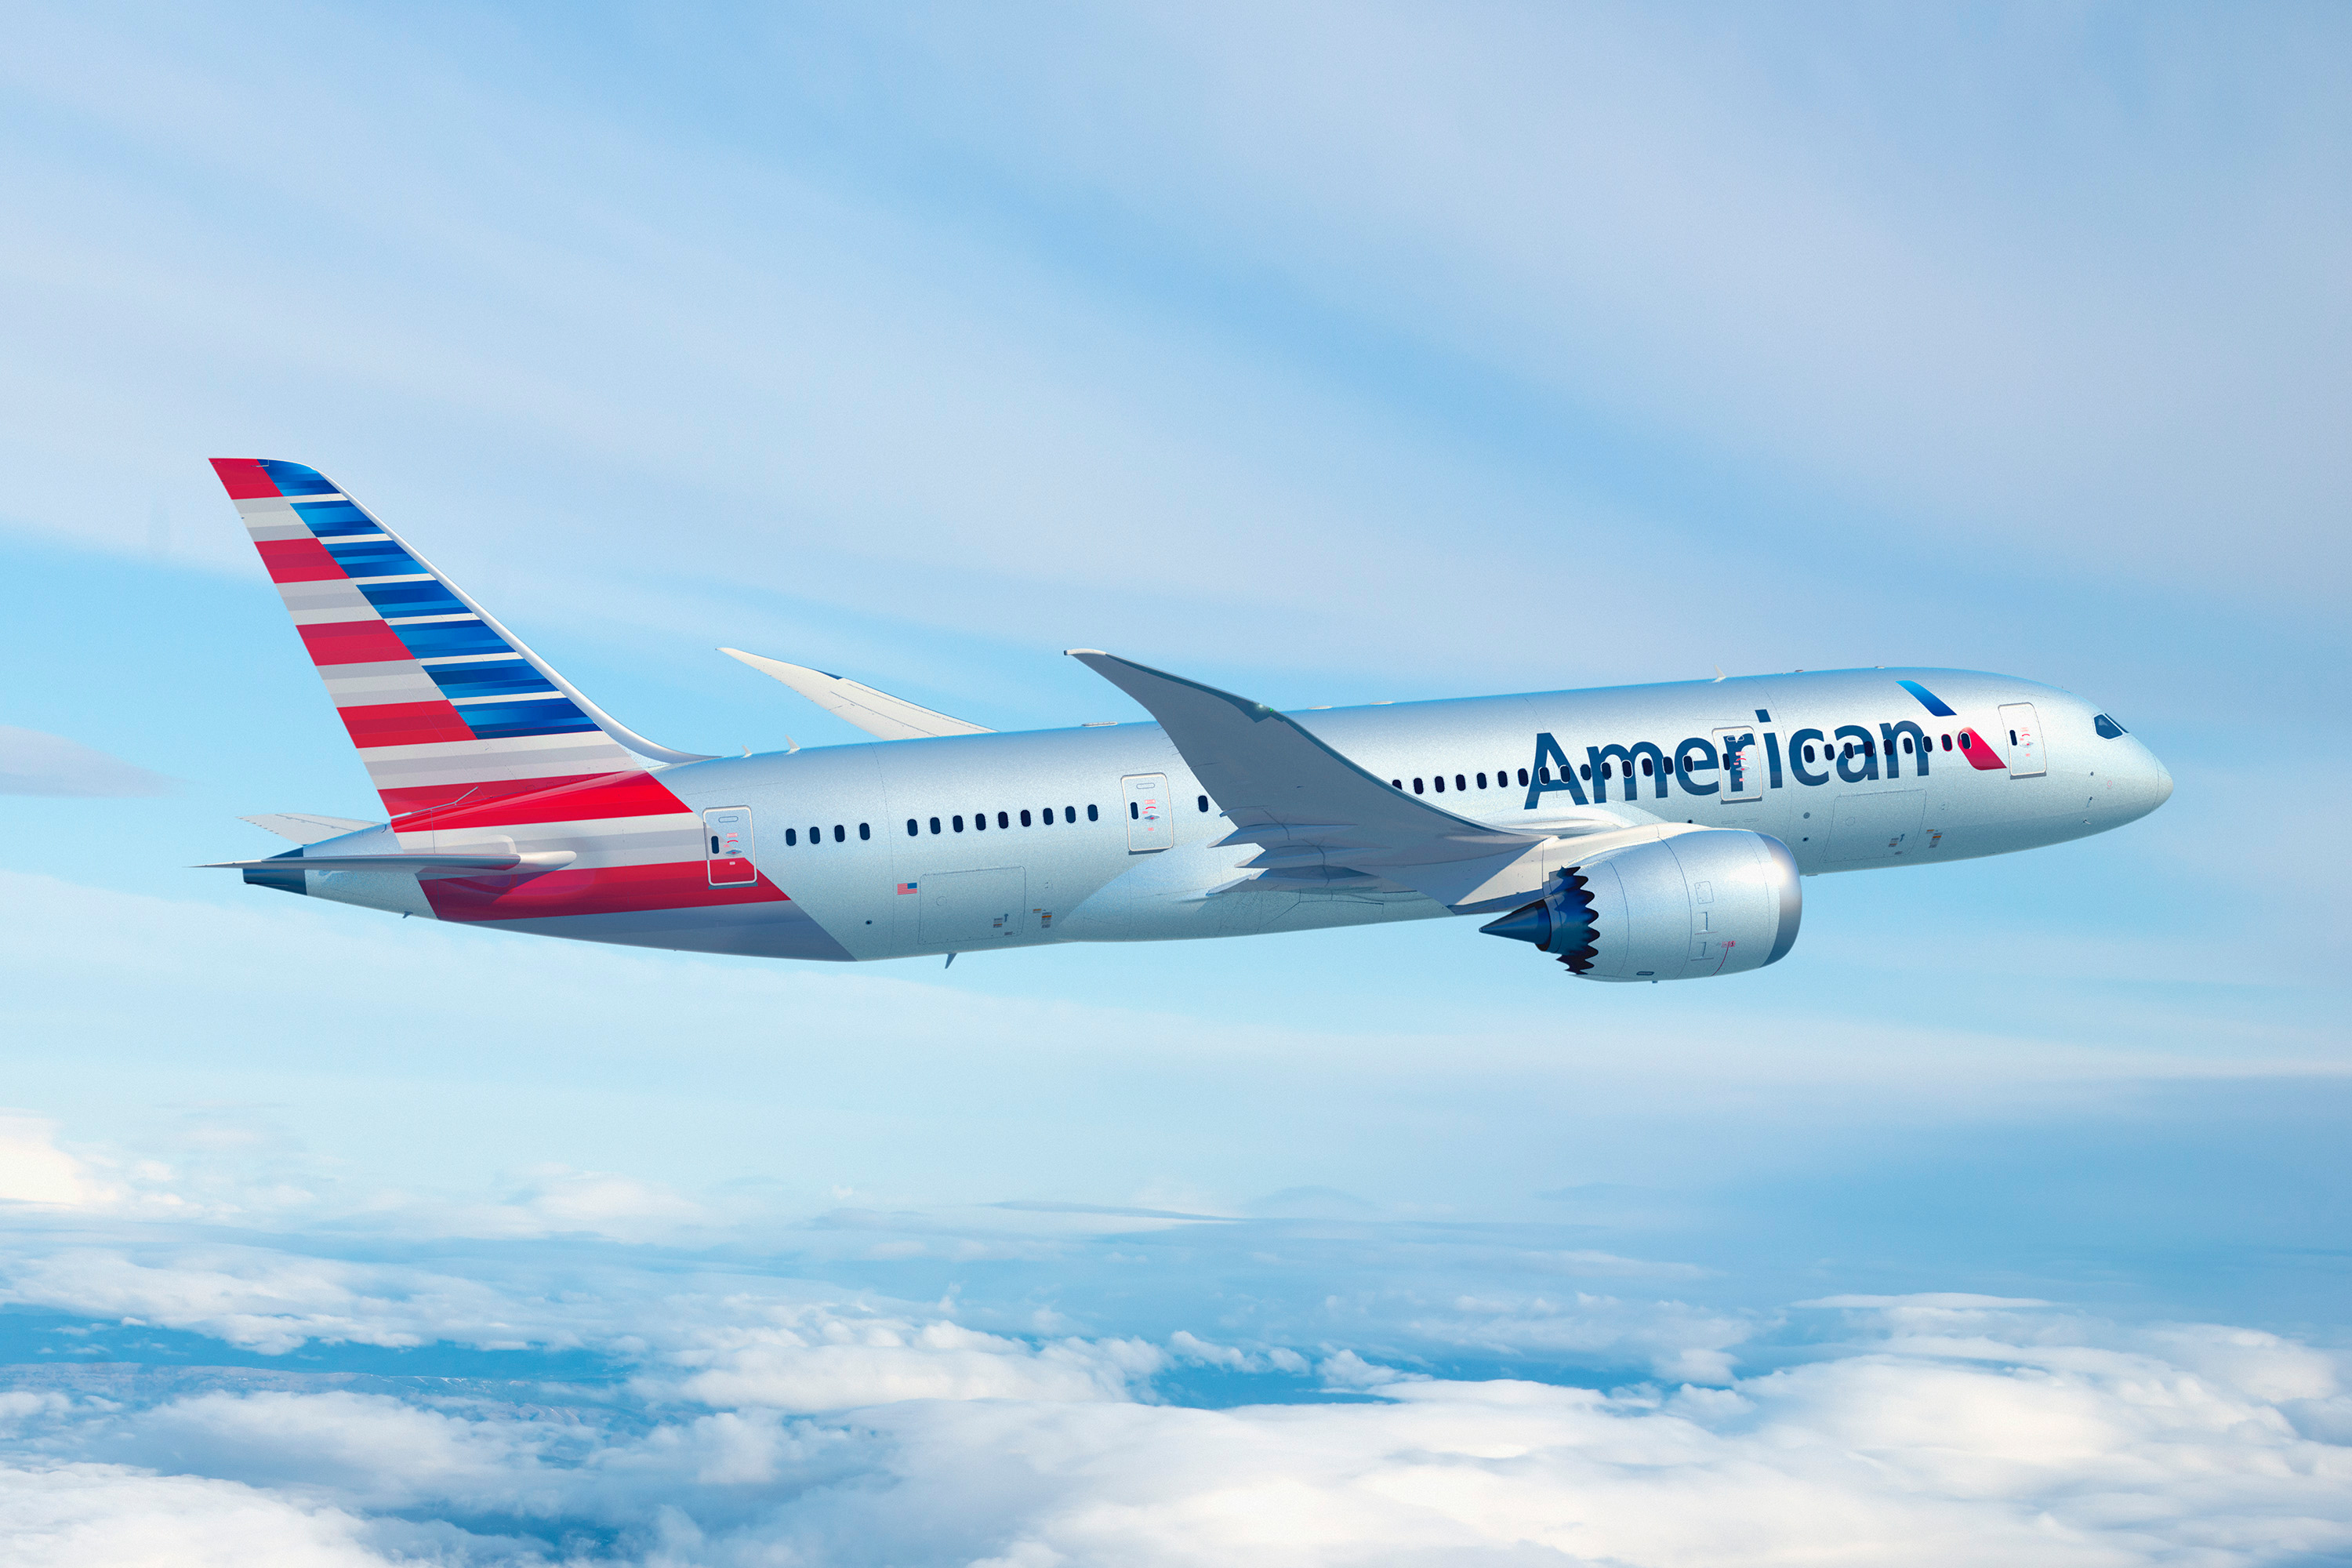 American Airlines Frequent Flyer Miles